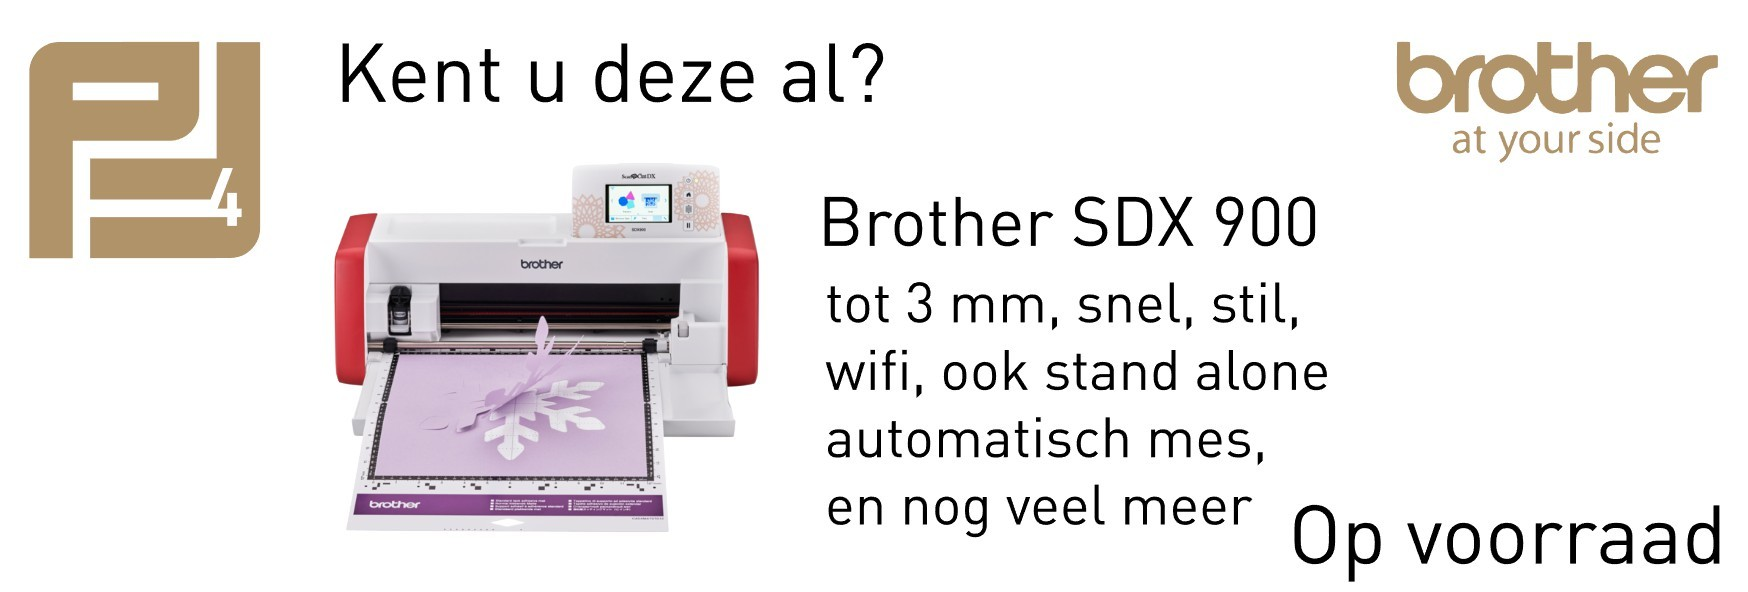 Brother SDX 900